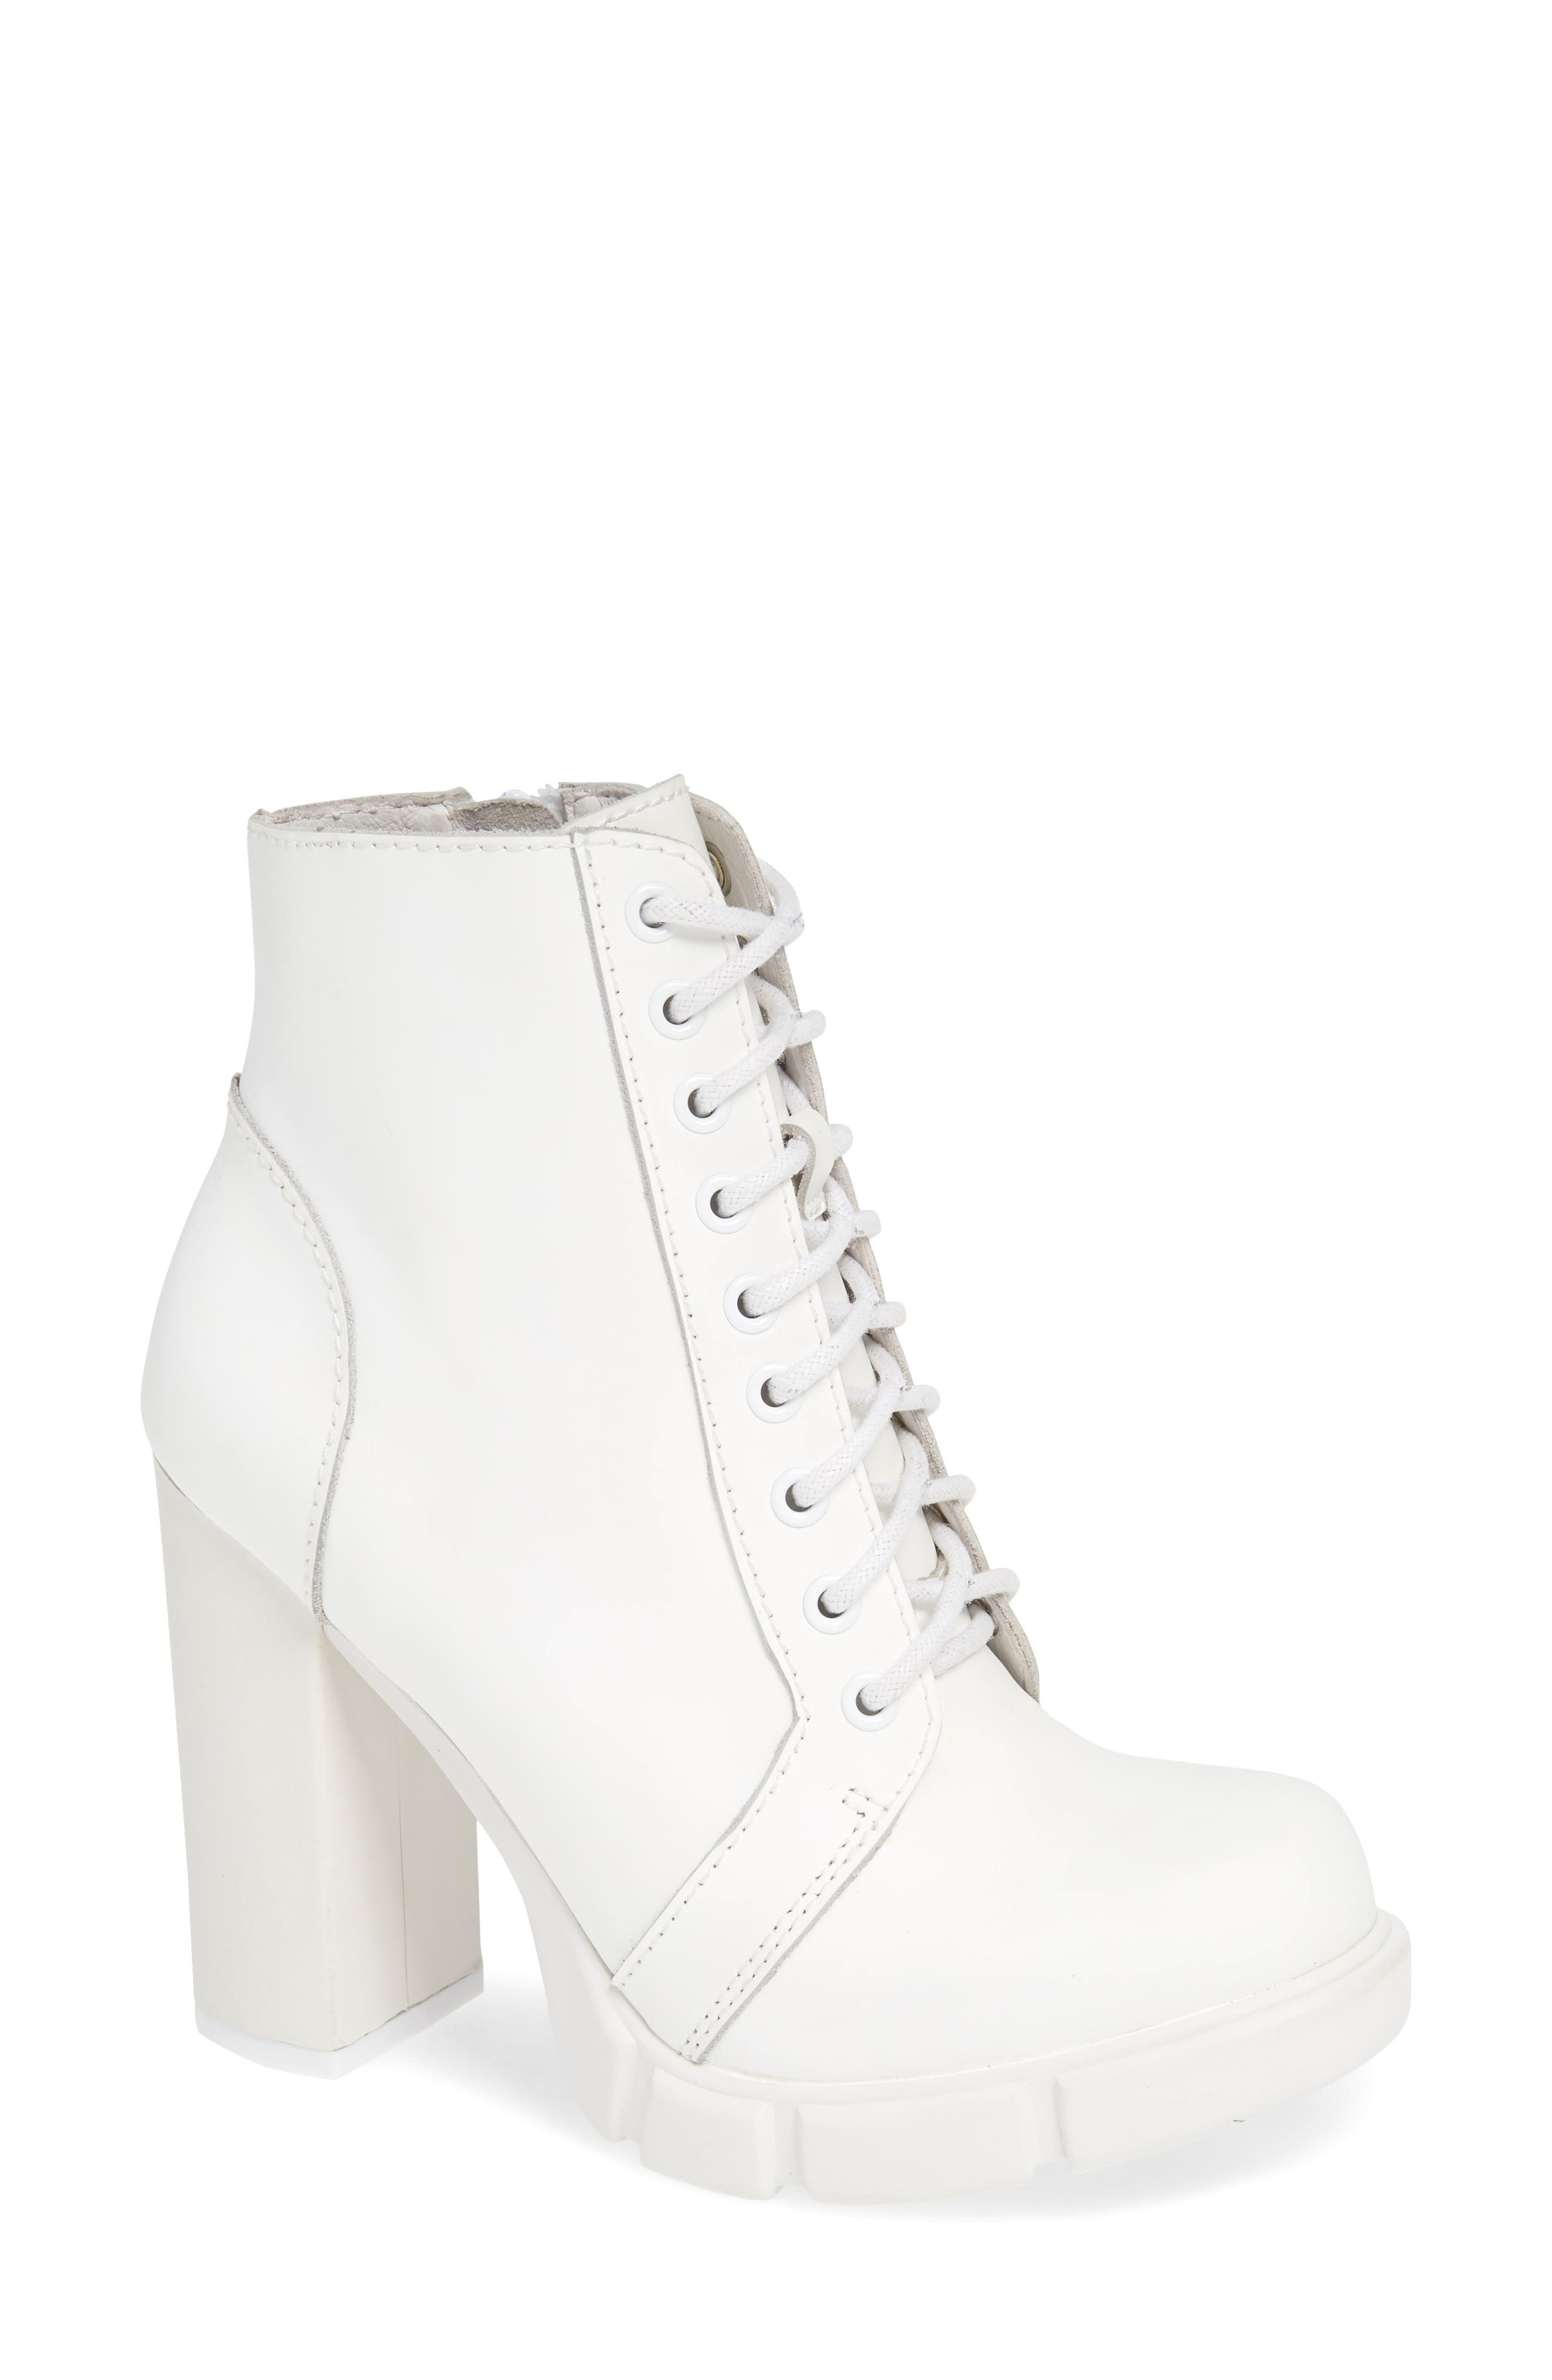 8b553be02 Jeffrey Campbell Solar Boot, White